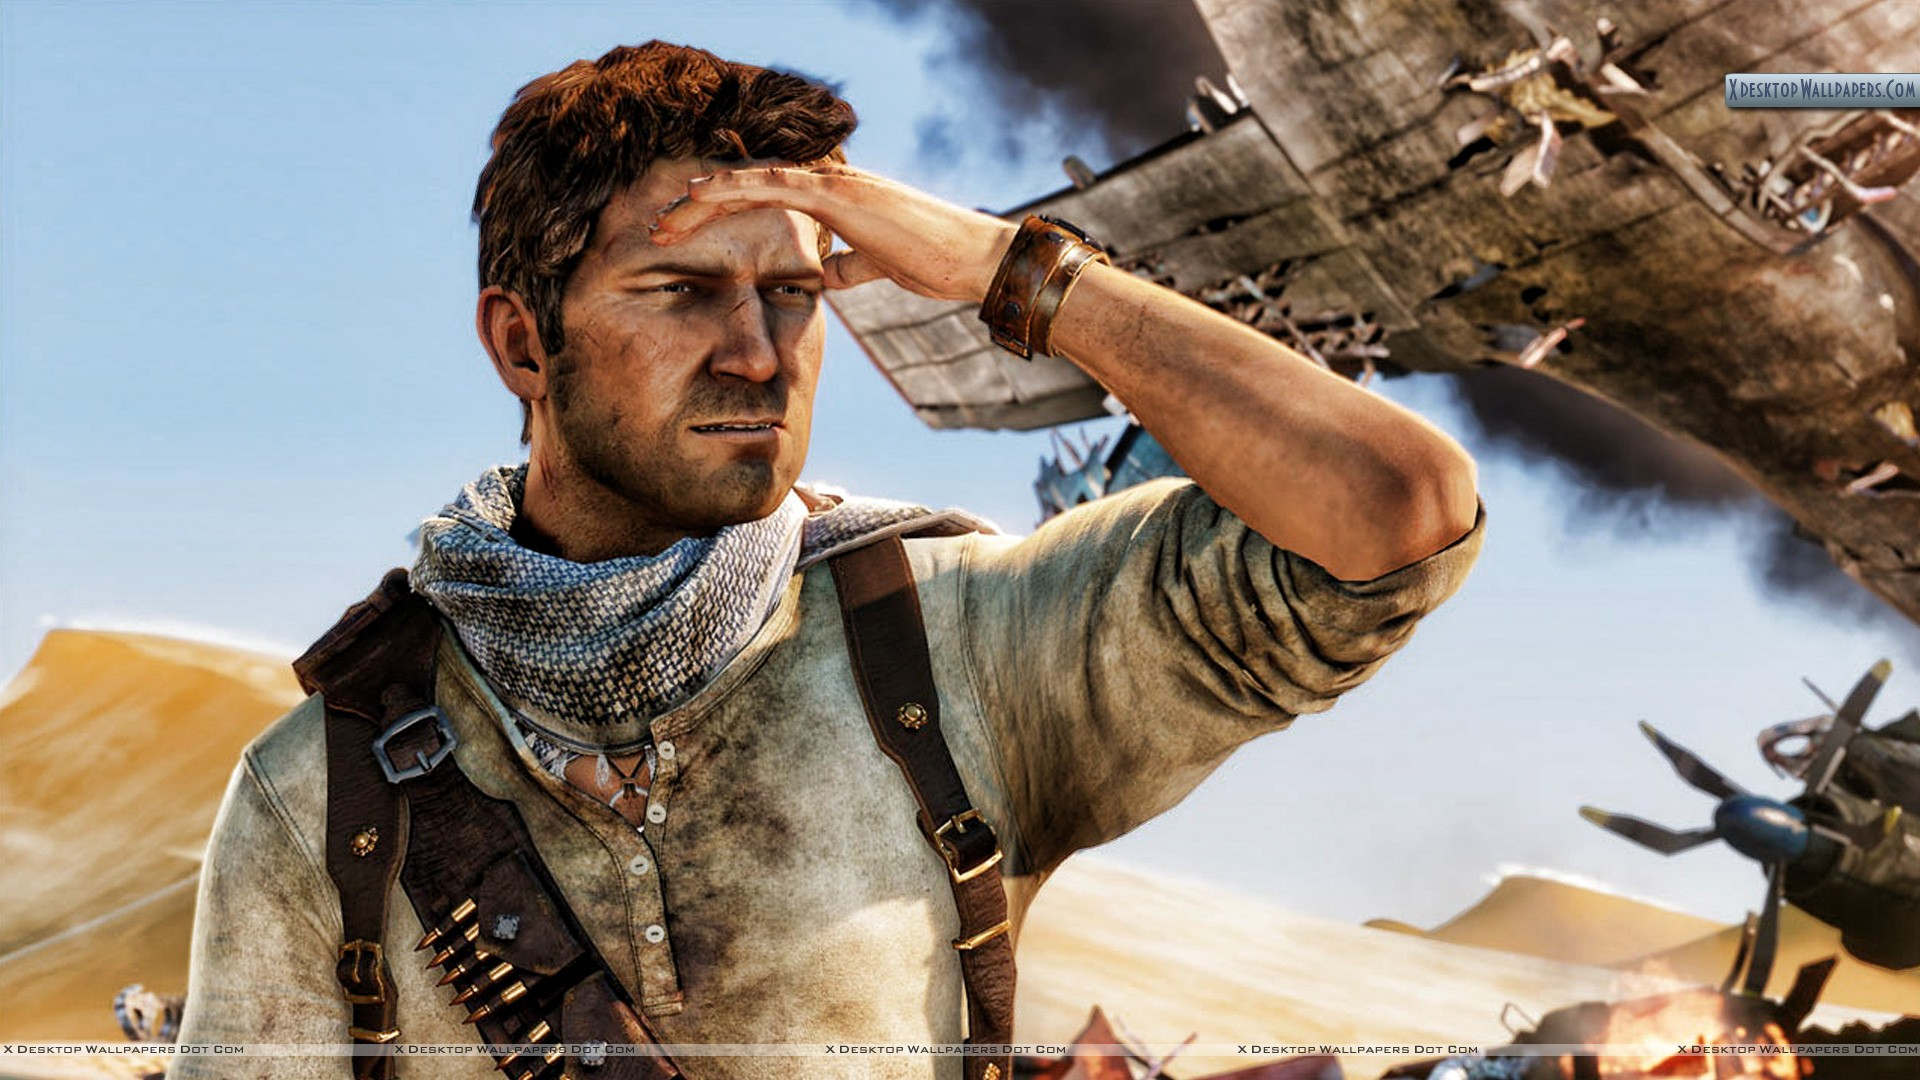 Uncharted 3 – Drakes Deception Wallpapers, Photos & Images ...